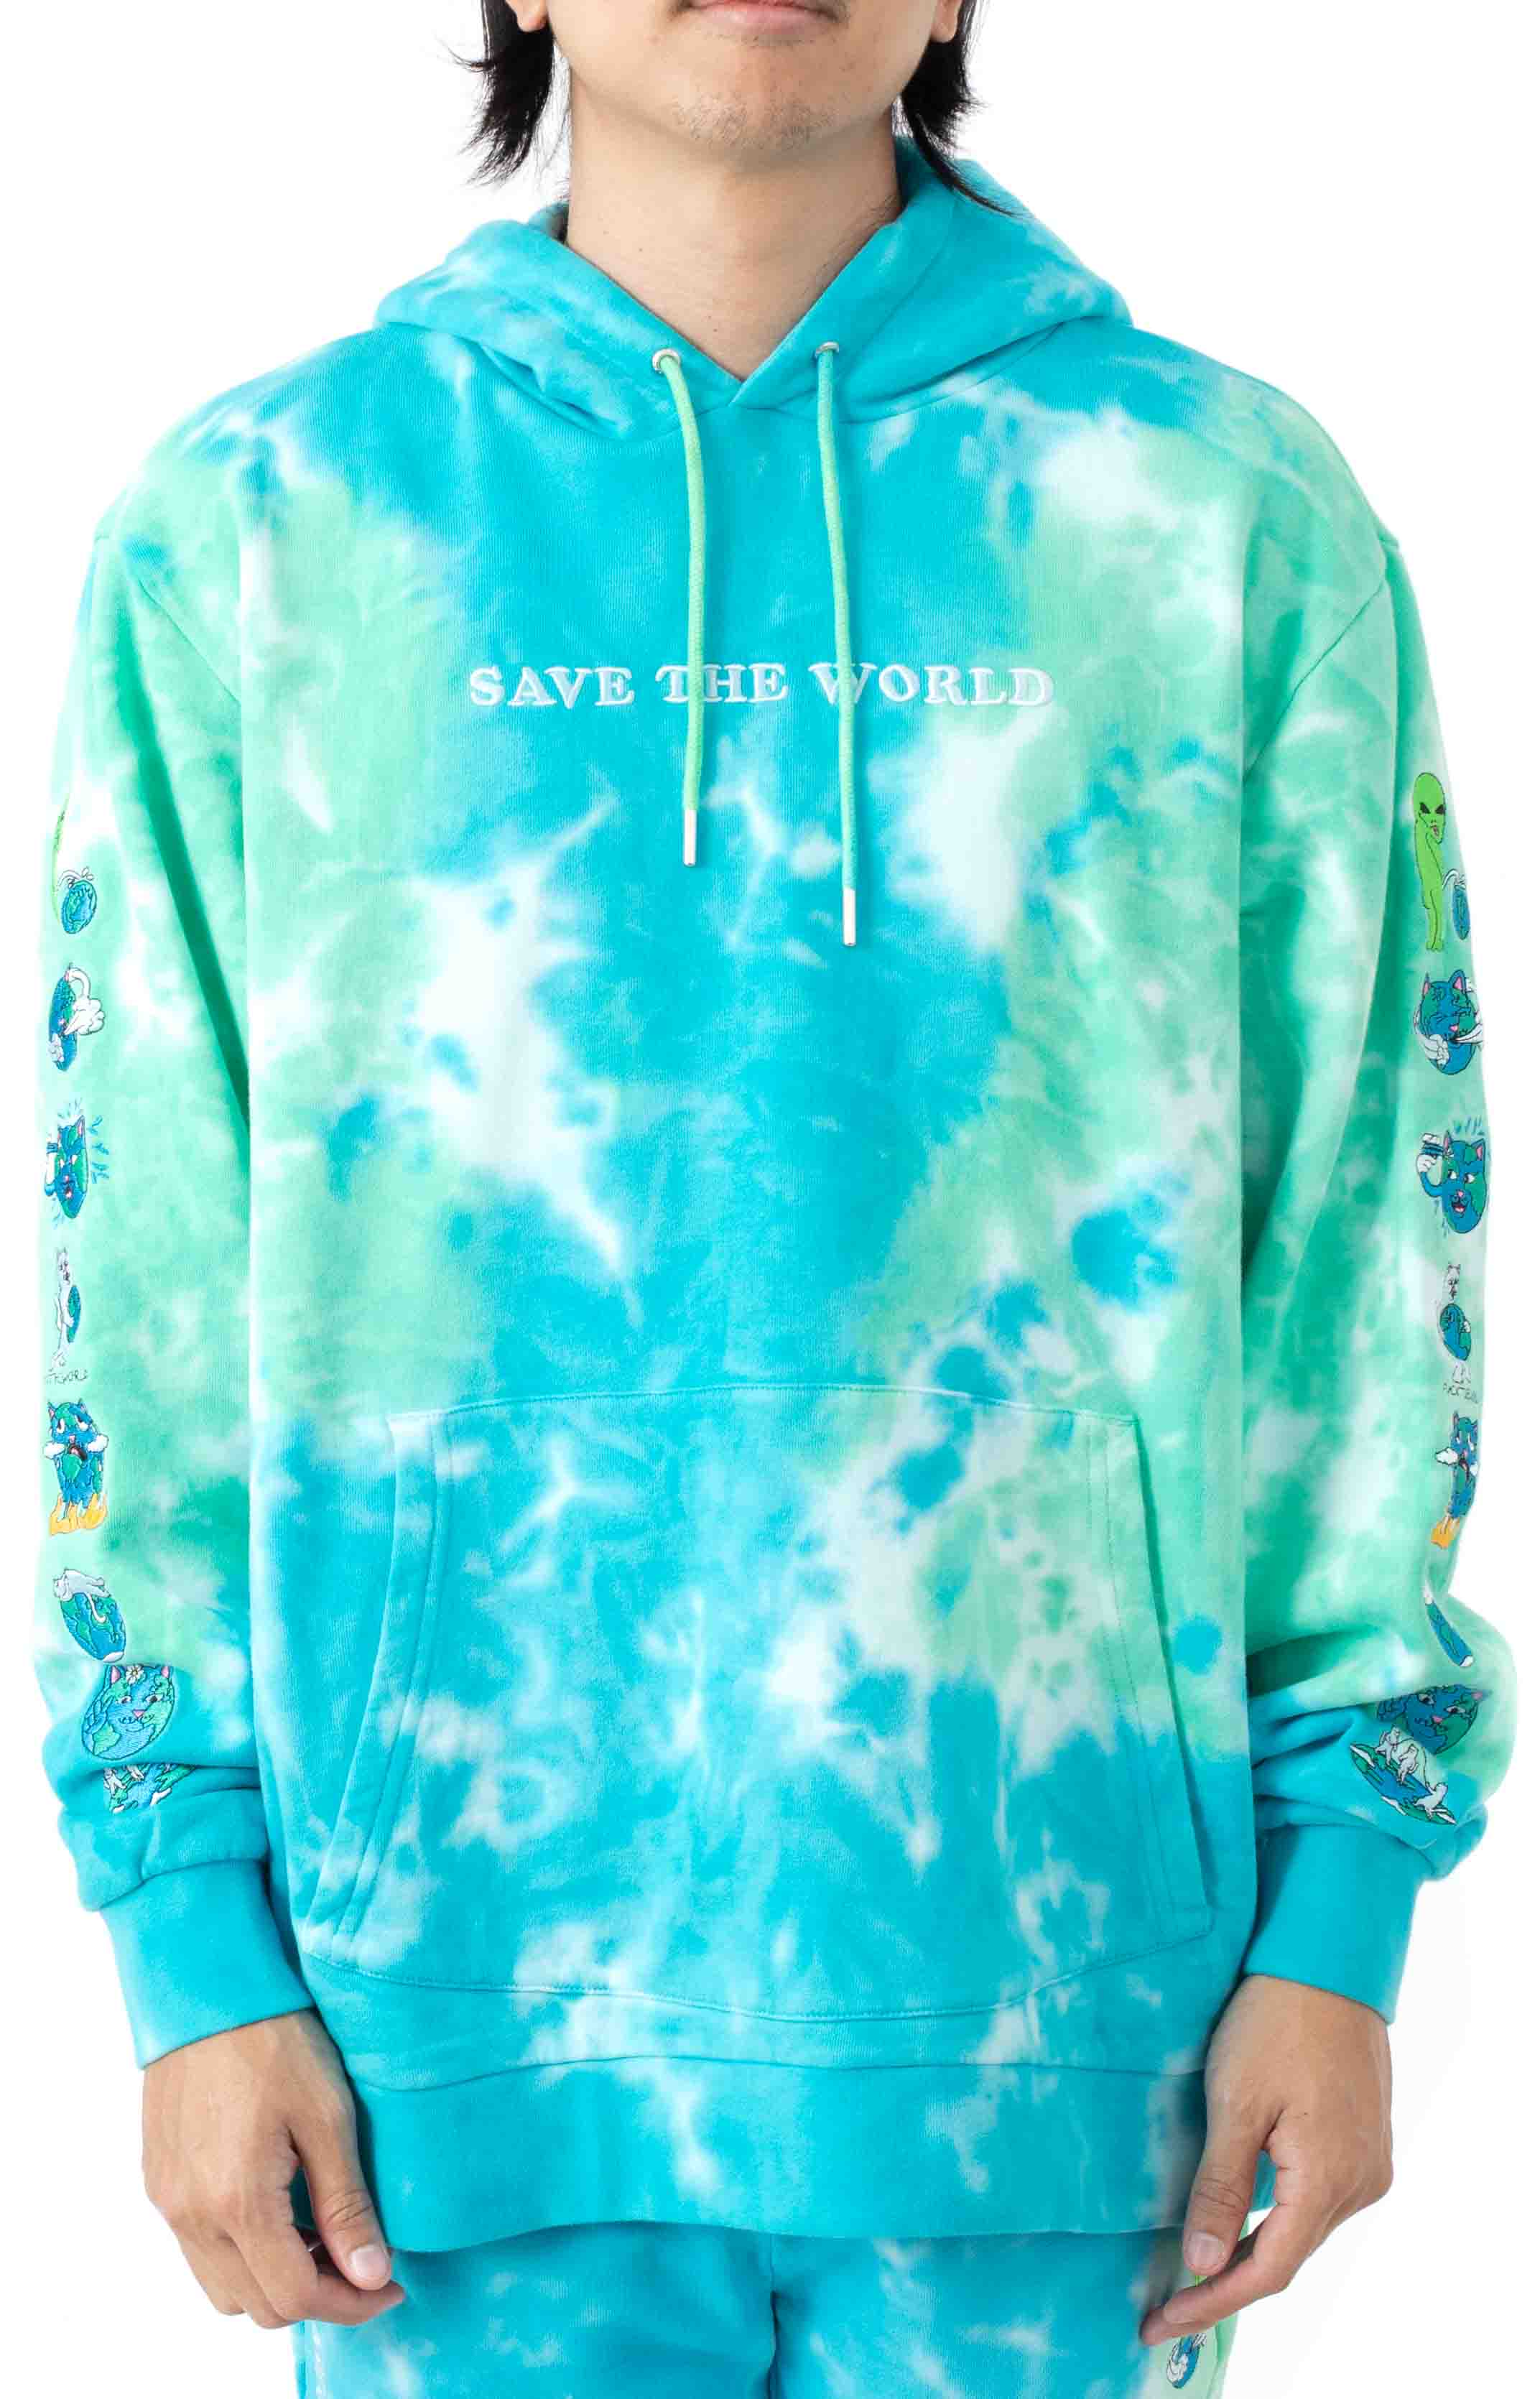 Save The World Embroidered Pullover Hoodie - Aqua/Green Tie-Dye